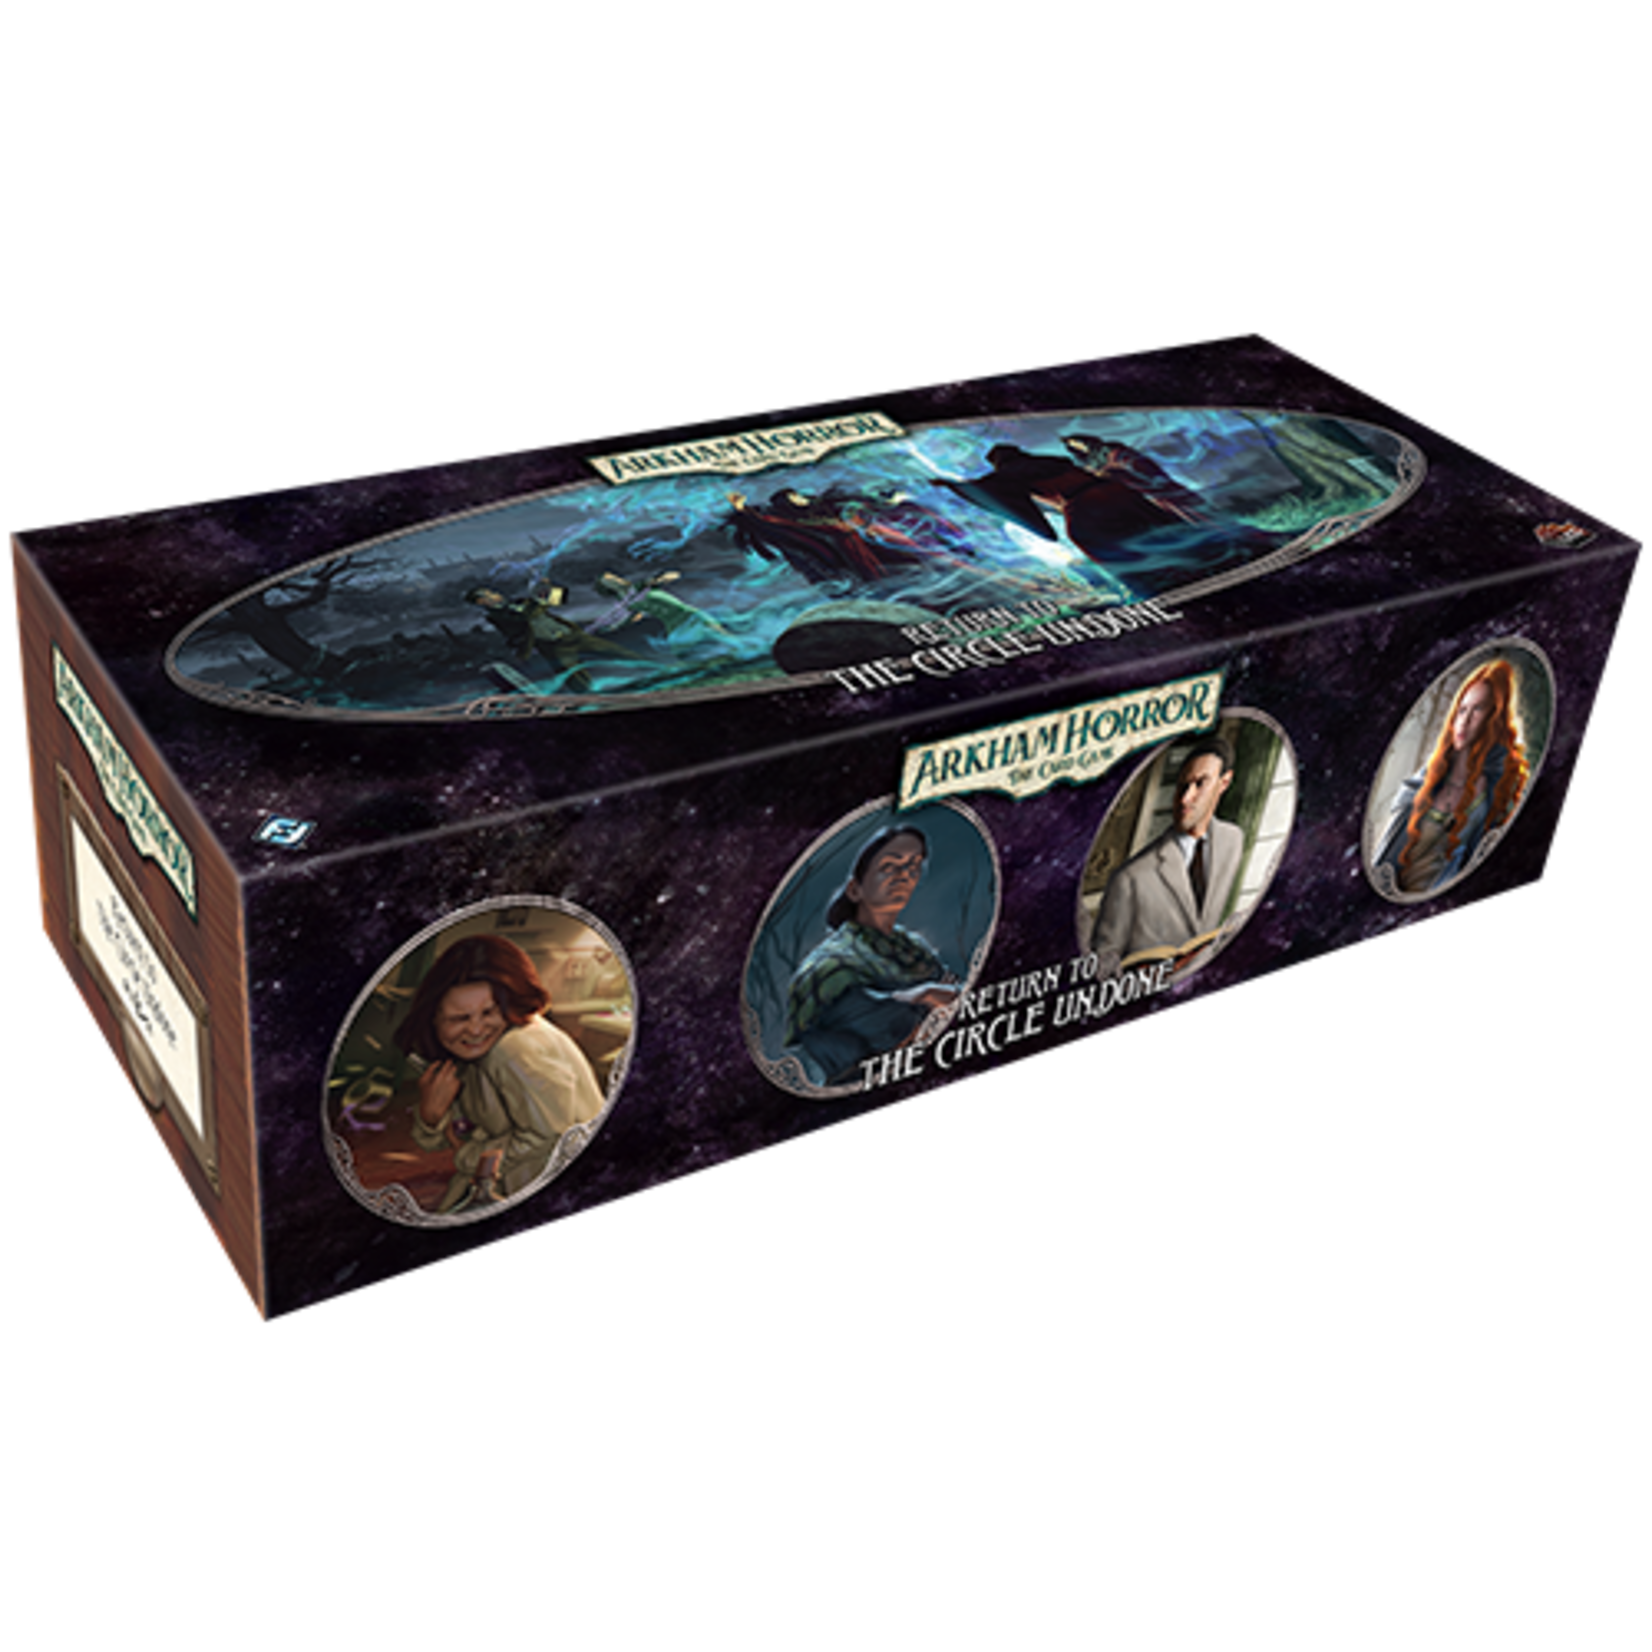 Fantasy Flight Games Arkham LCG: Return to the Circle Undone